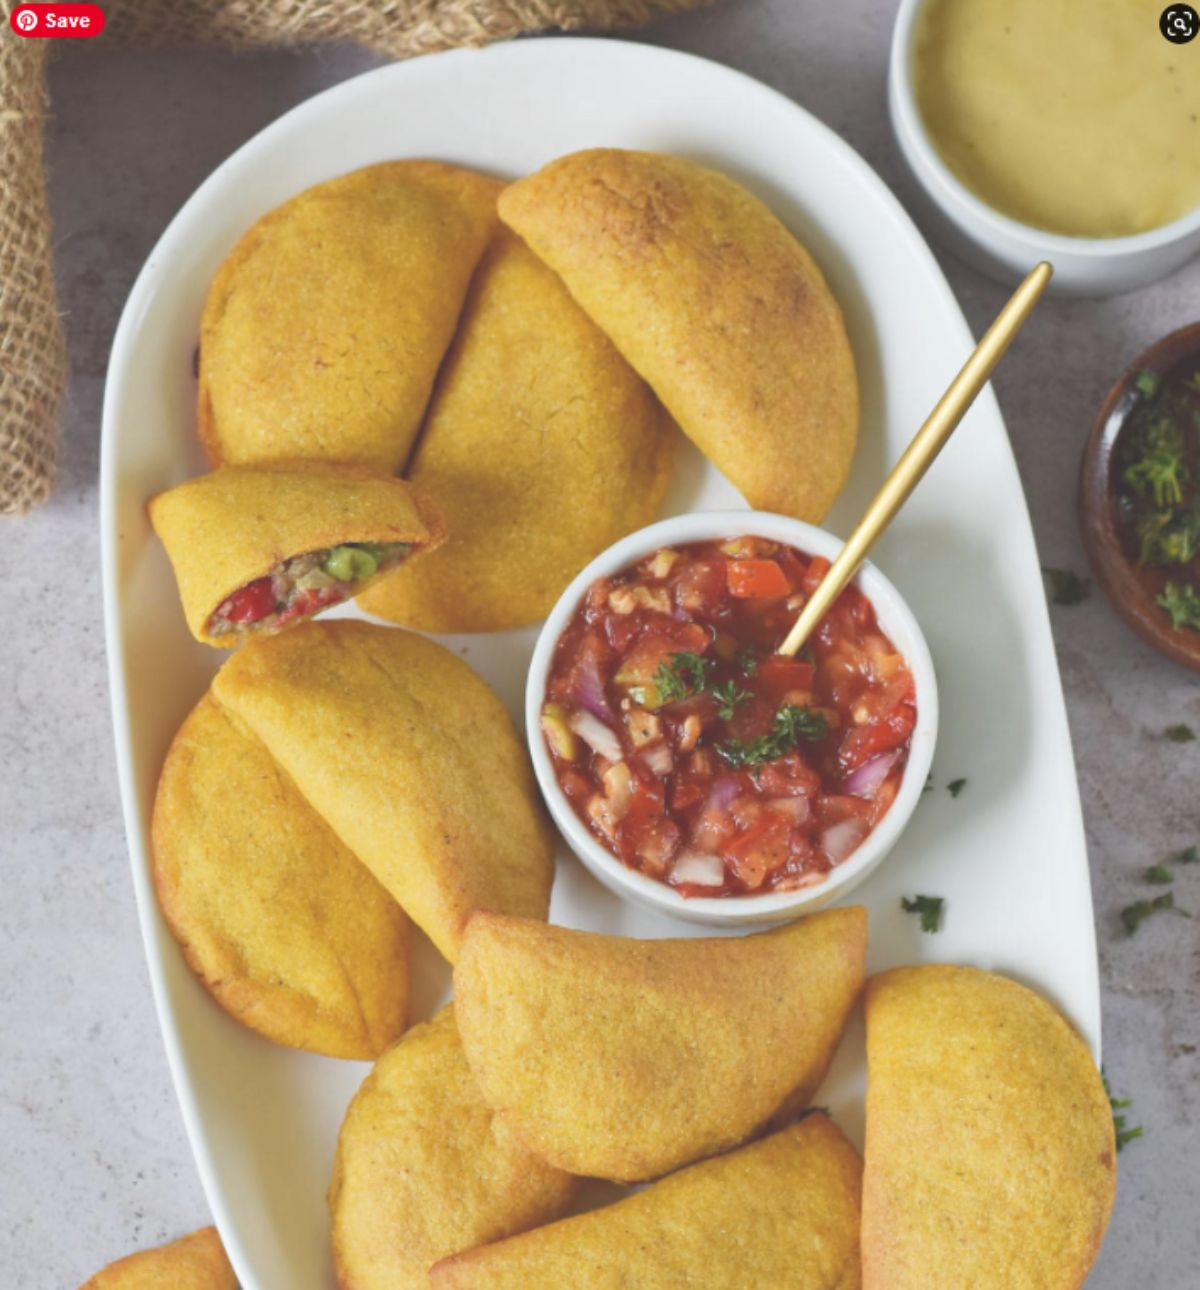 a white oval dish of empanadas with a bowl of salsa in the middle of the pile